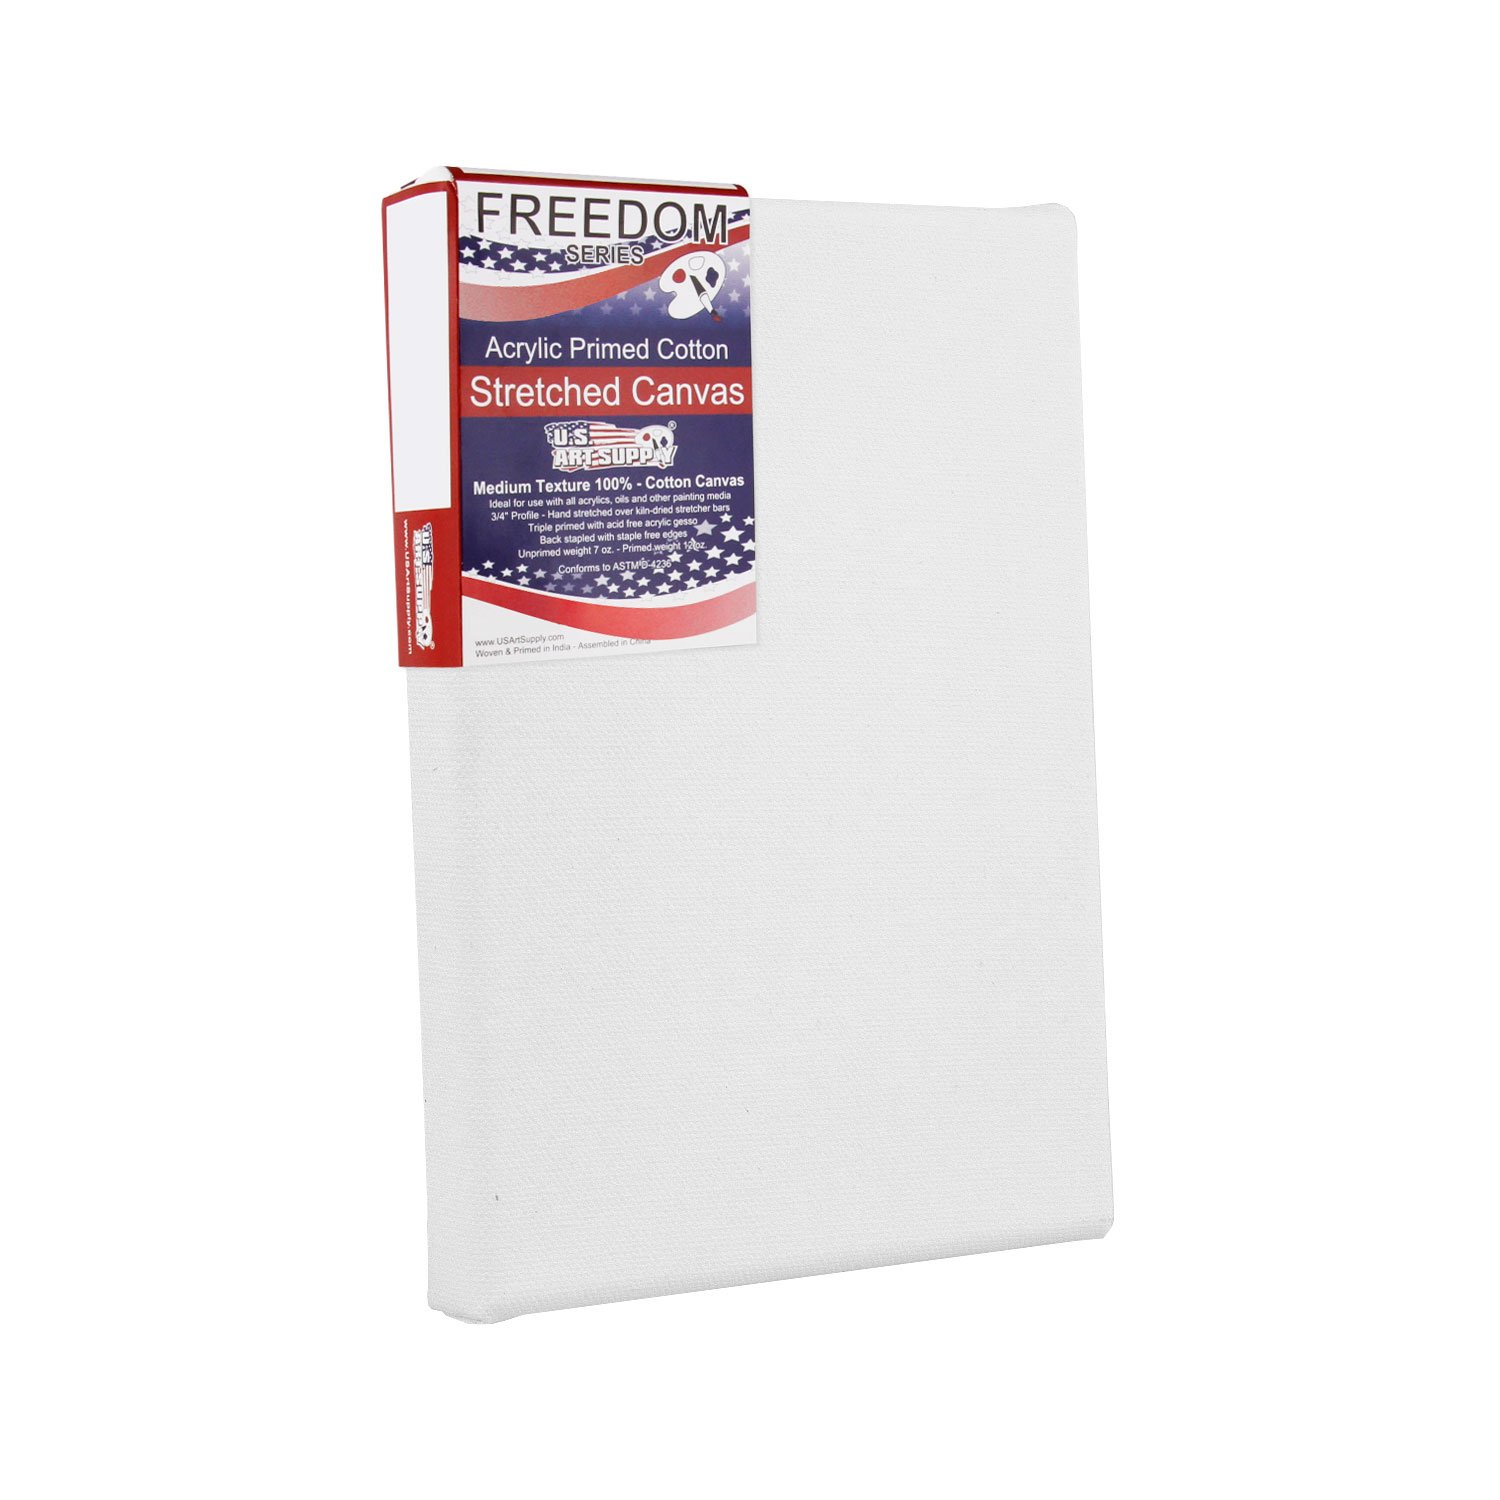 1 Full Case of 4 Single Canvases US Art Supply 8 x 10 inch Black Professional Quality Acid Free Stretched Canvas 4-Pack 3//4 Profile 12 Ounce Primed Gesso